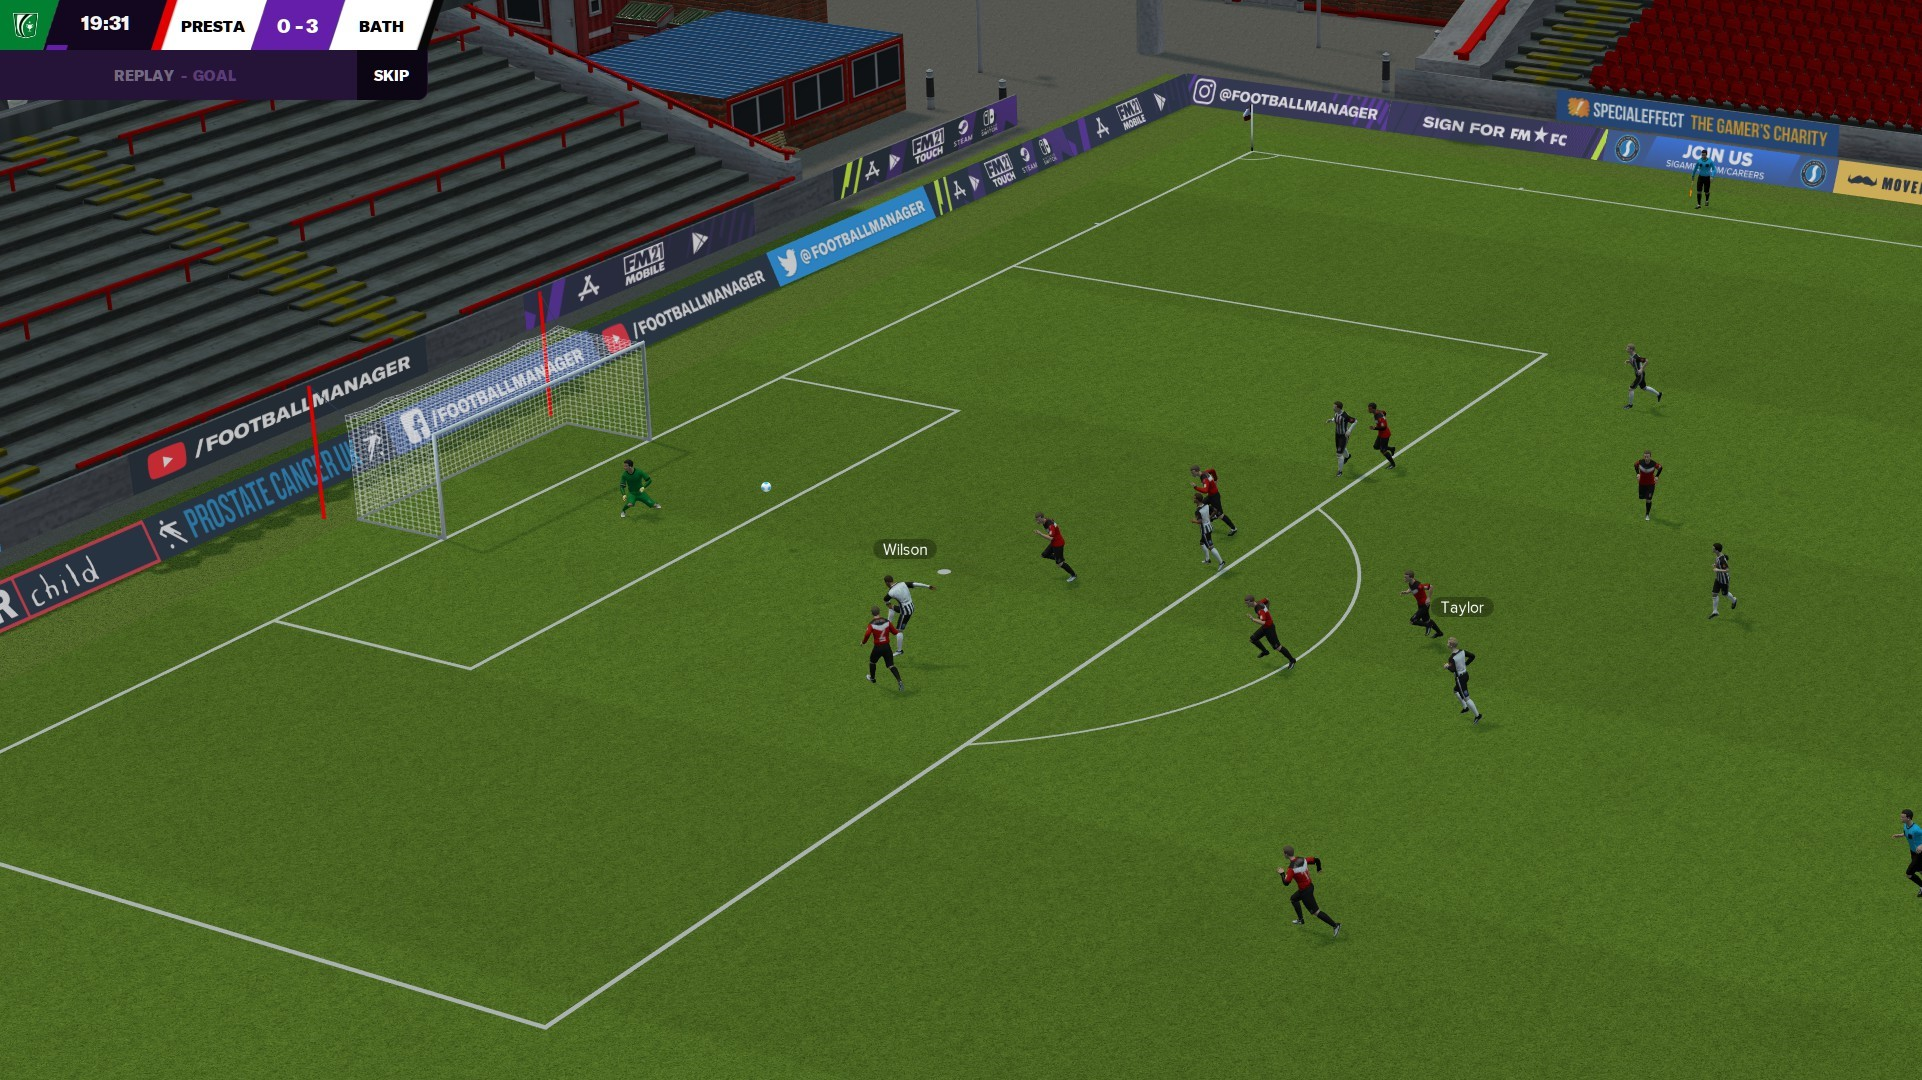 Football Manager has joined a social media boycott to protest online abuse